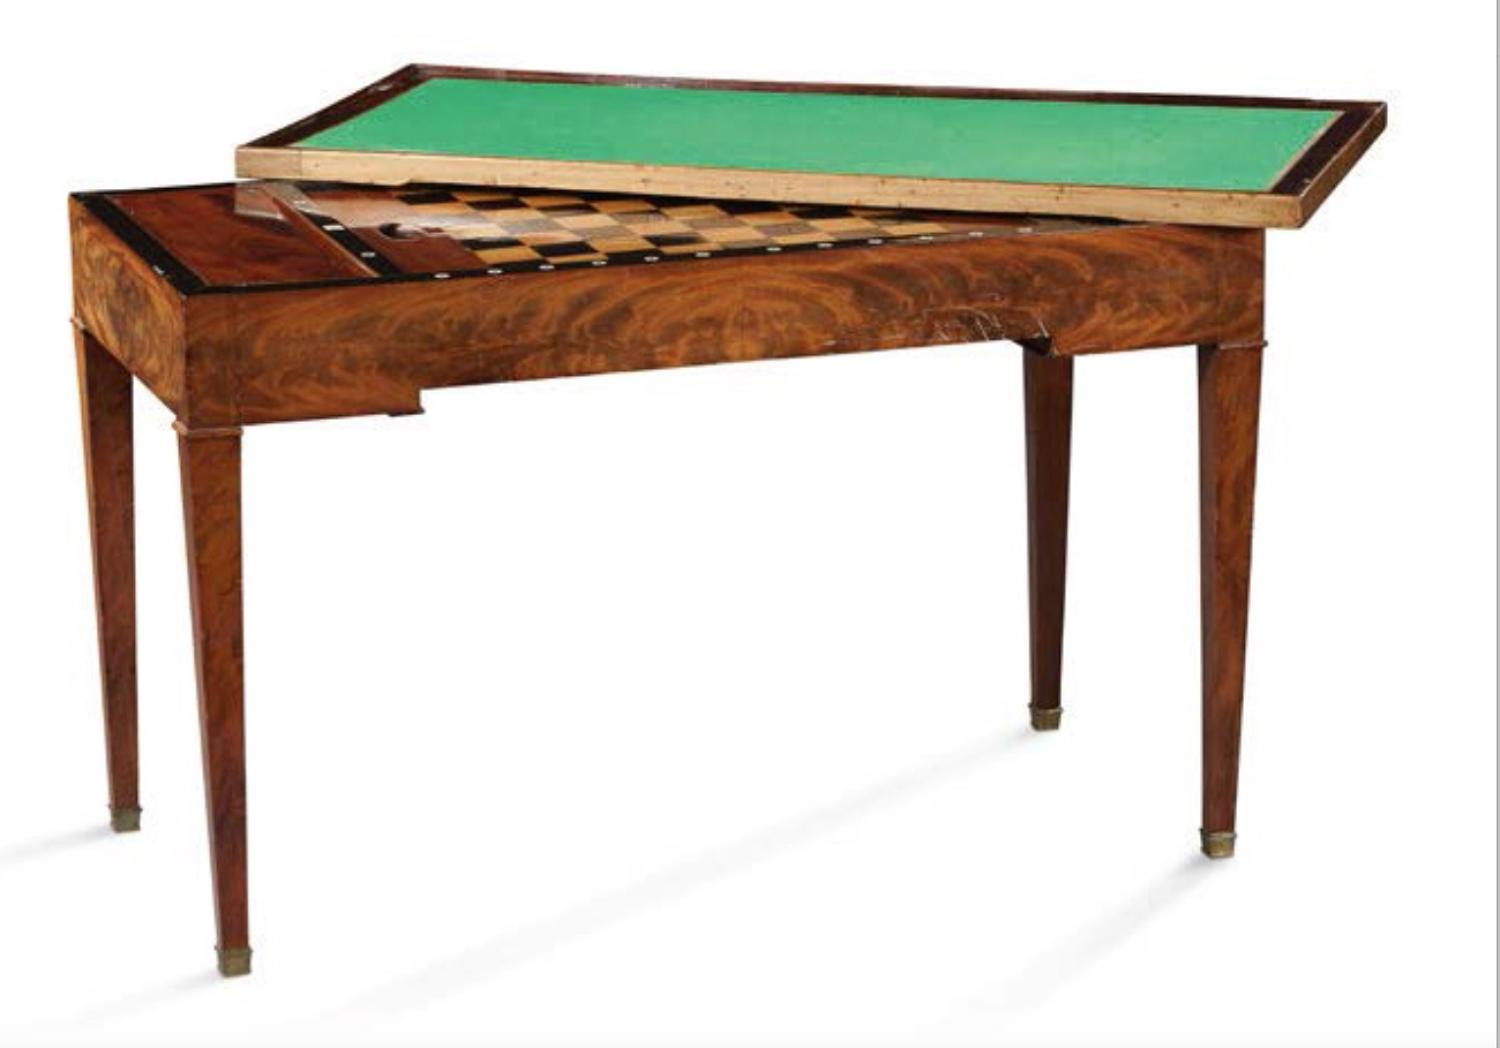 A LOUIS XVI PERIOD MAHOGANY TRIC/TRAC TABLE